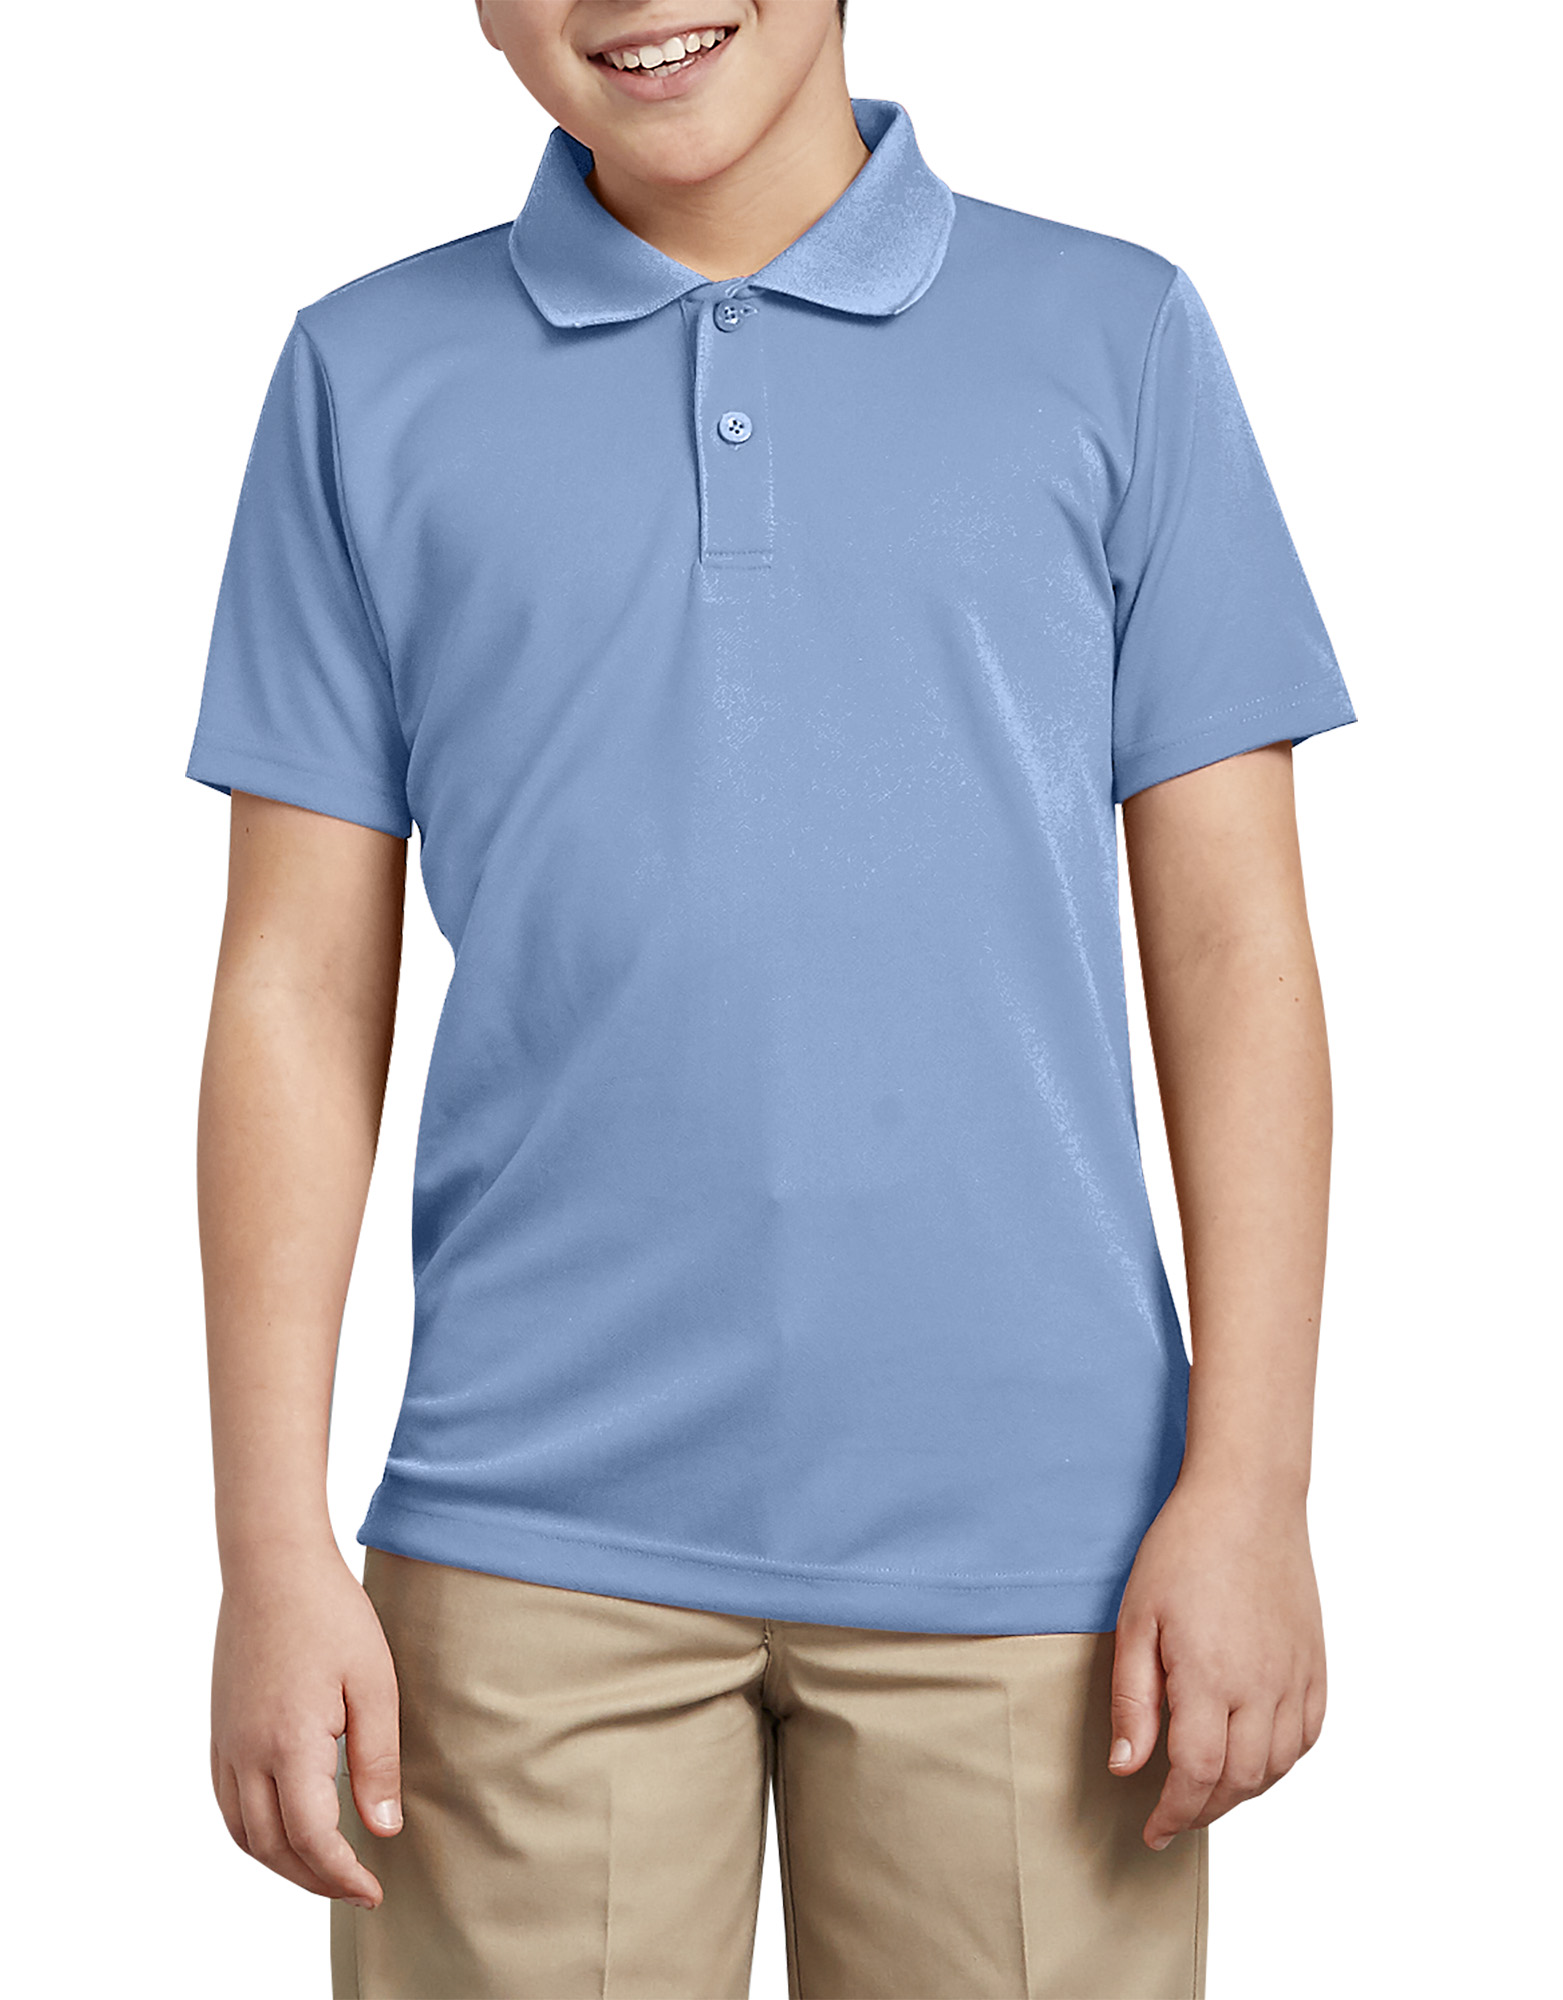 Boys' Performance Polo Shirt, 4-20 - Light Blue (LB)